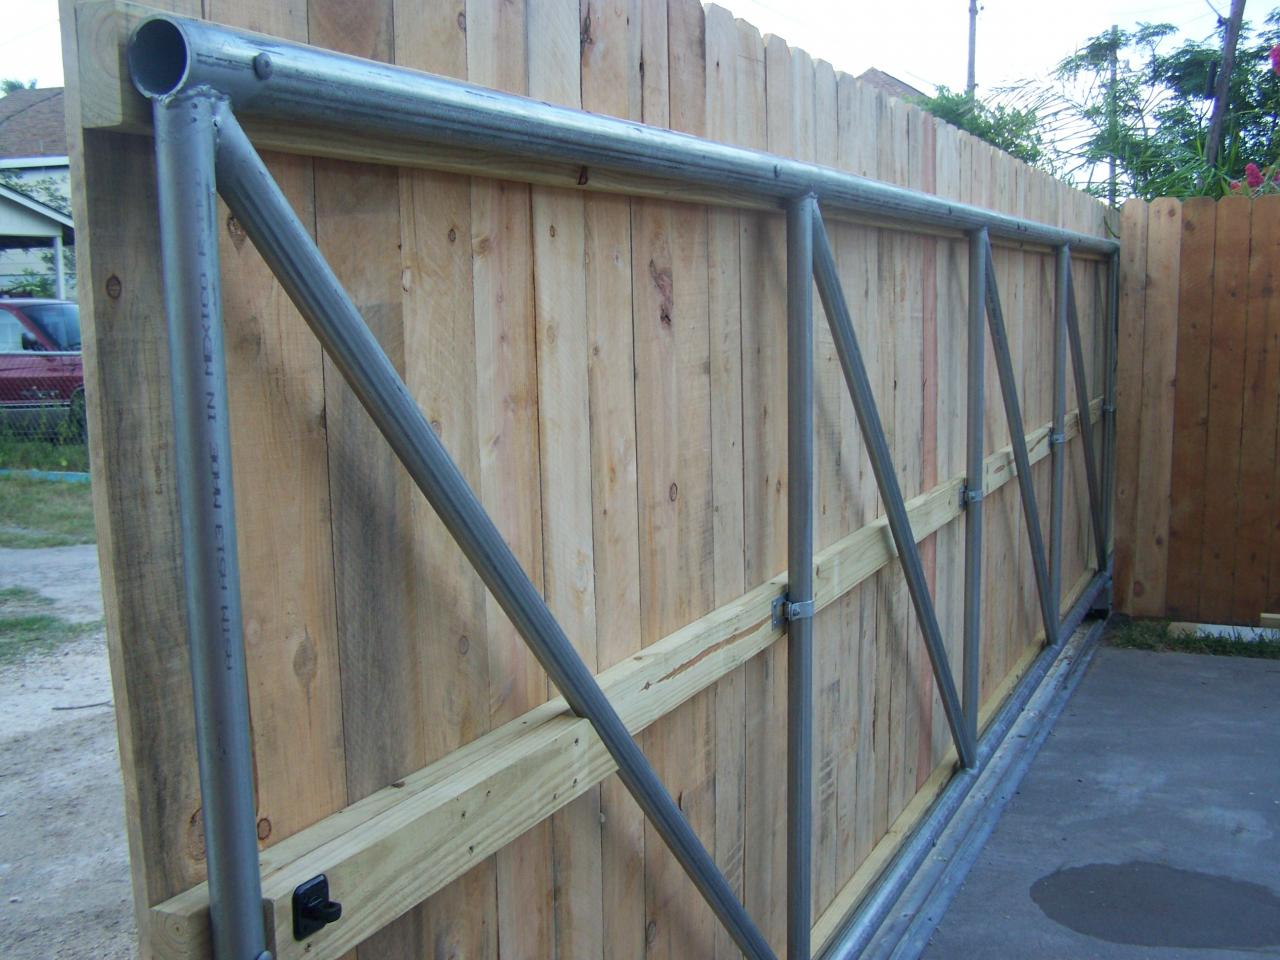 Sliding Fence Gate Diy Diy Projects